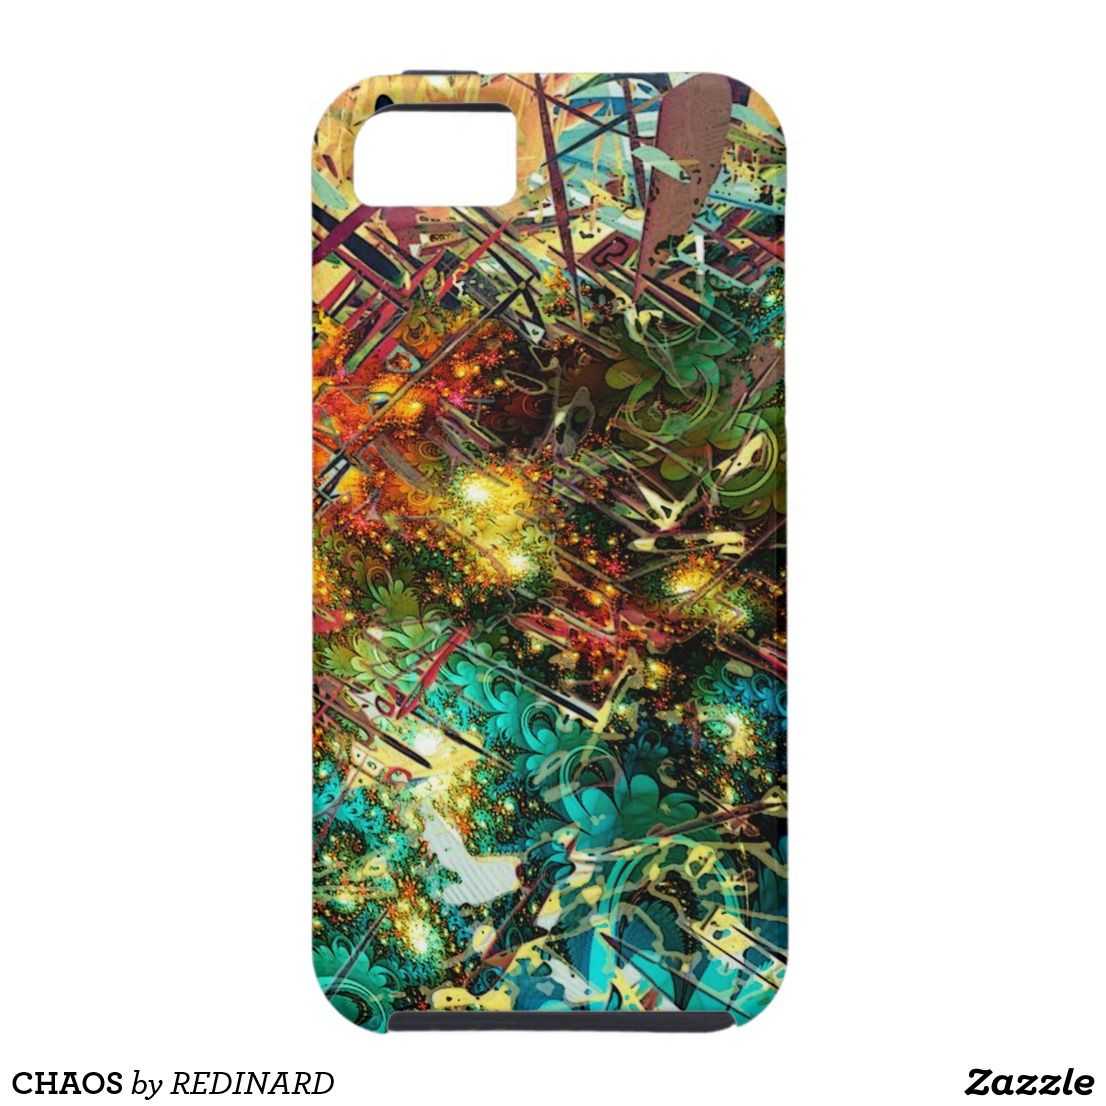 Chaos casemate iphone case with images